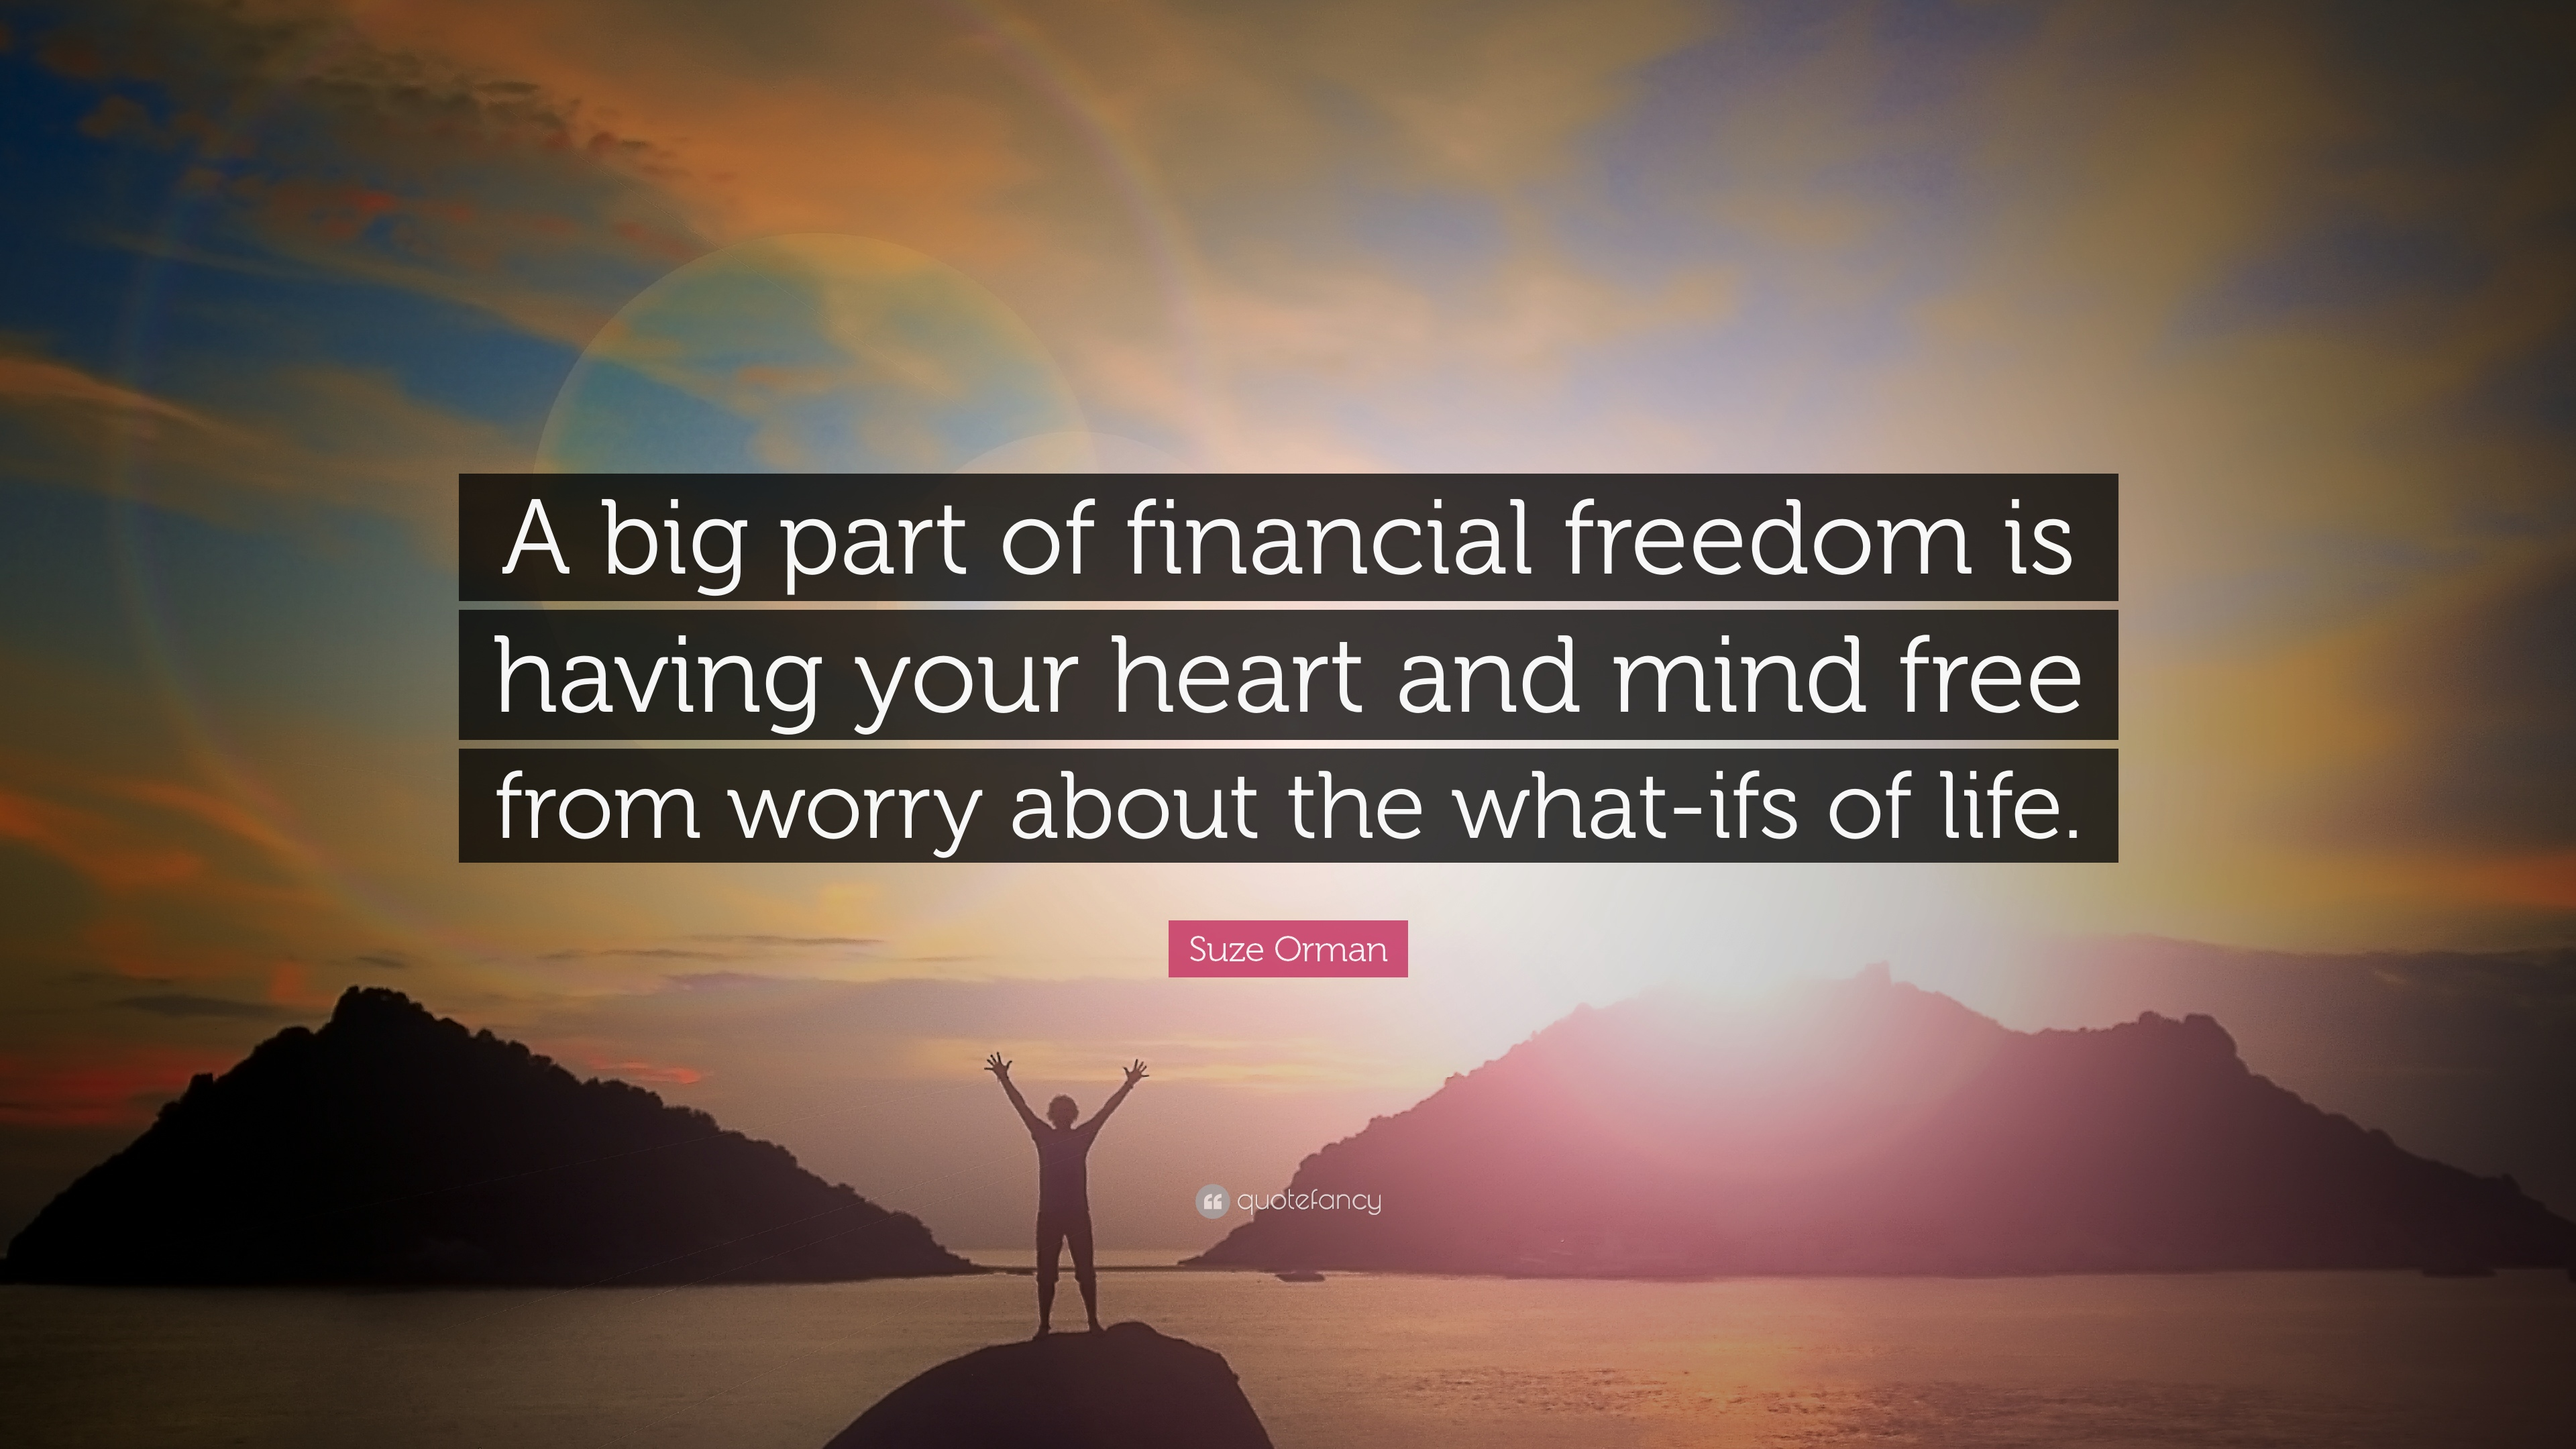 Business Quotes: U201cA Big Part Of Financial Freedom Is Having Your Heart And  Mind